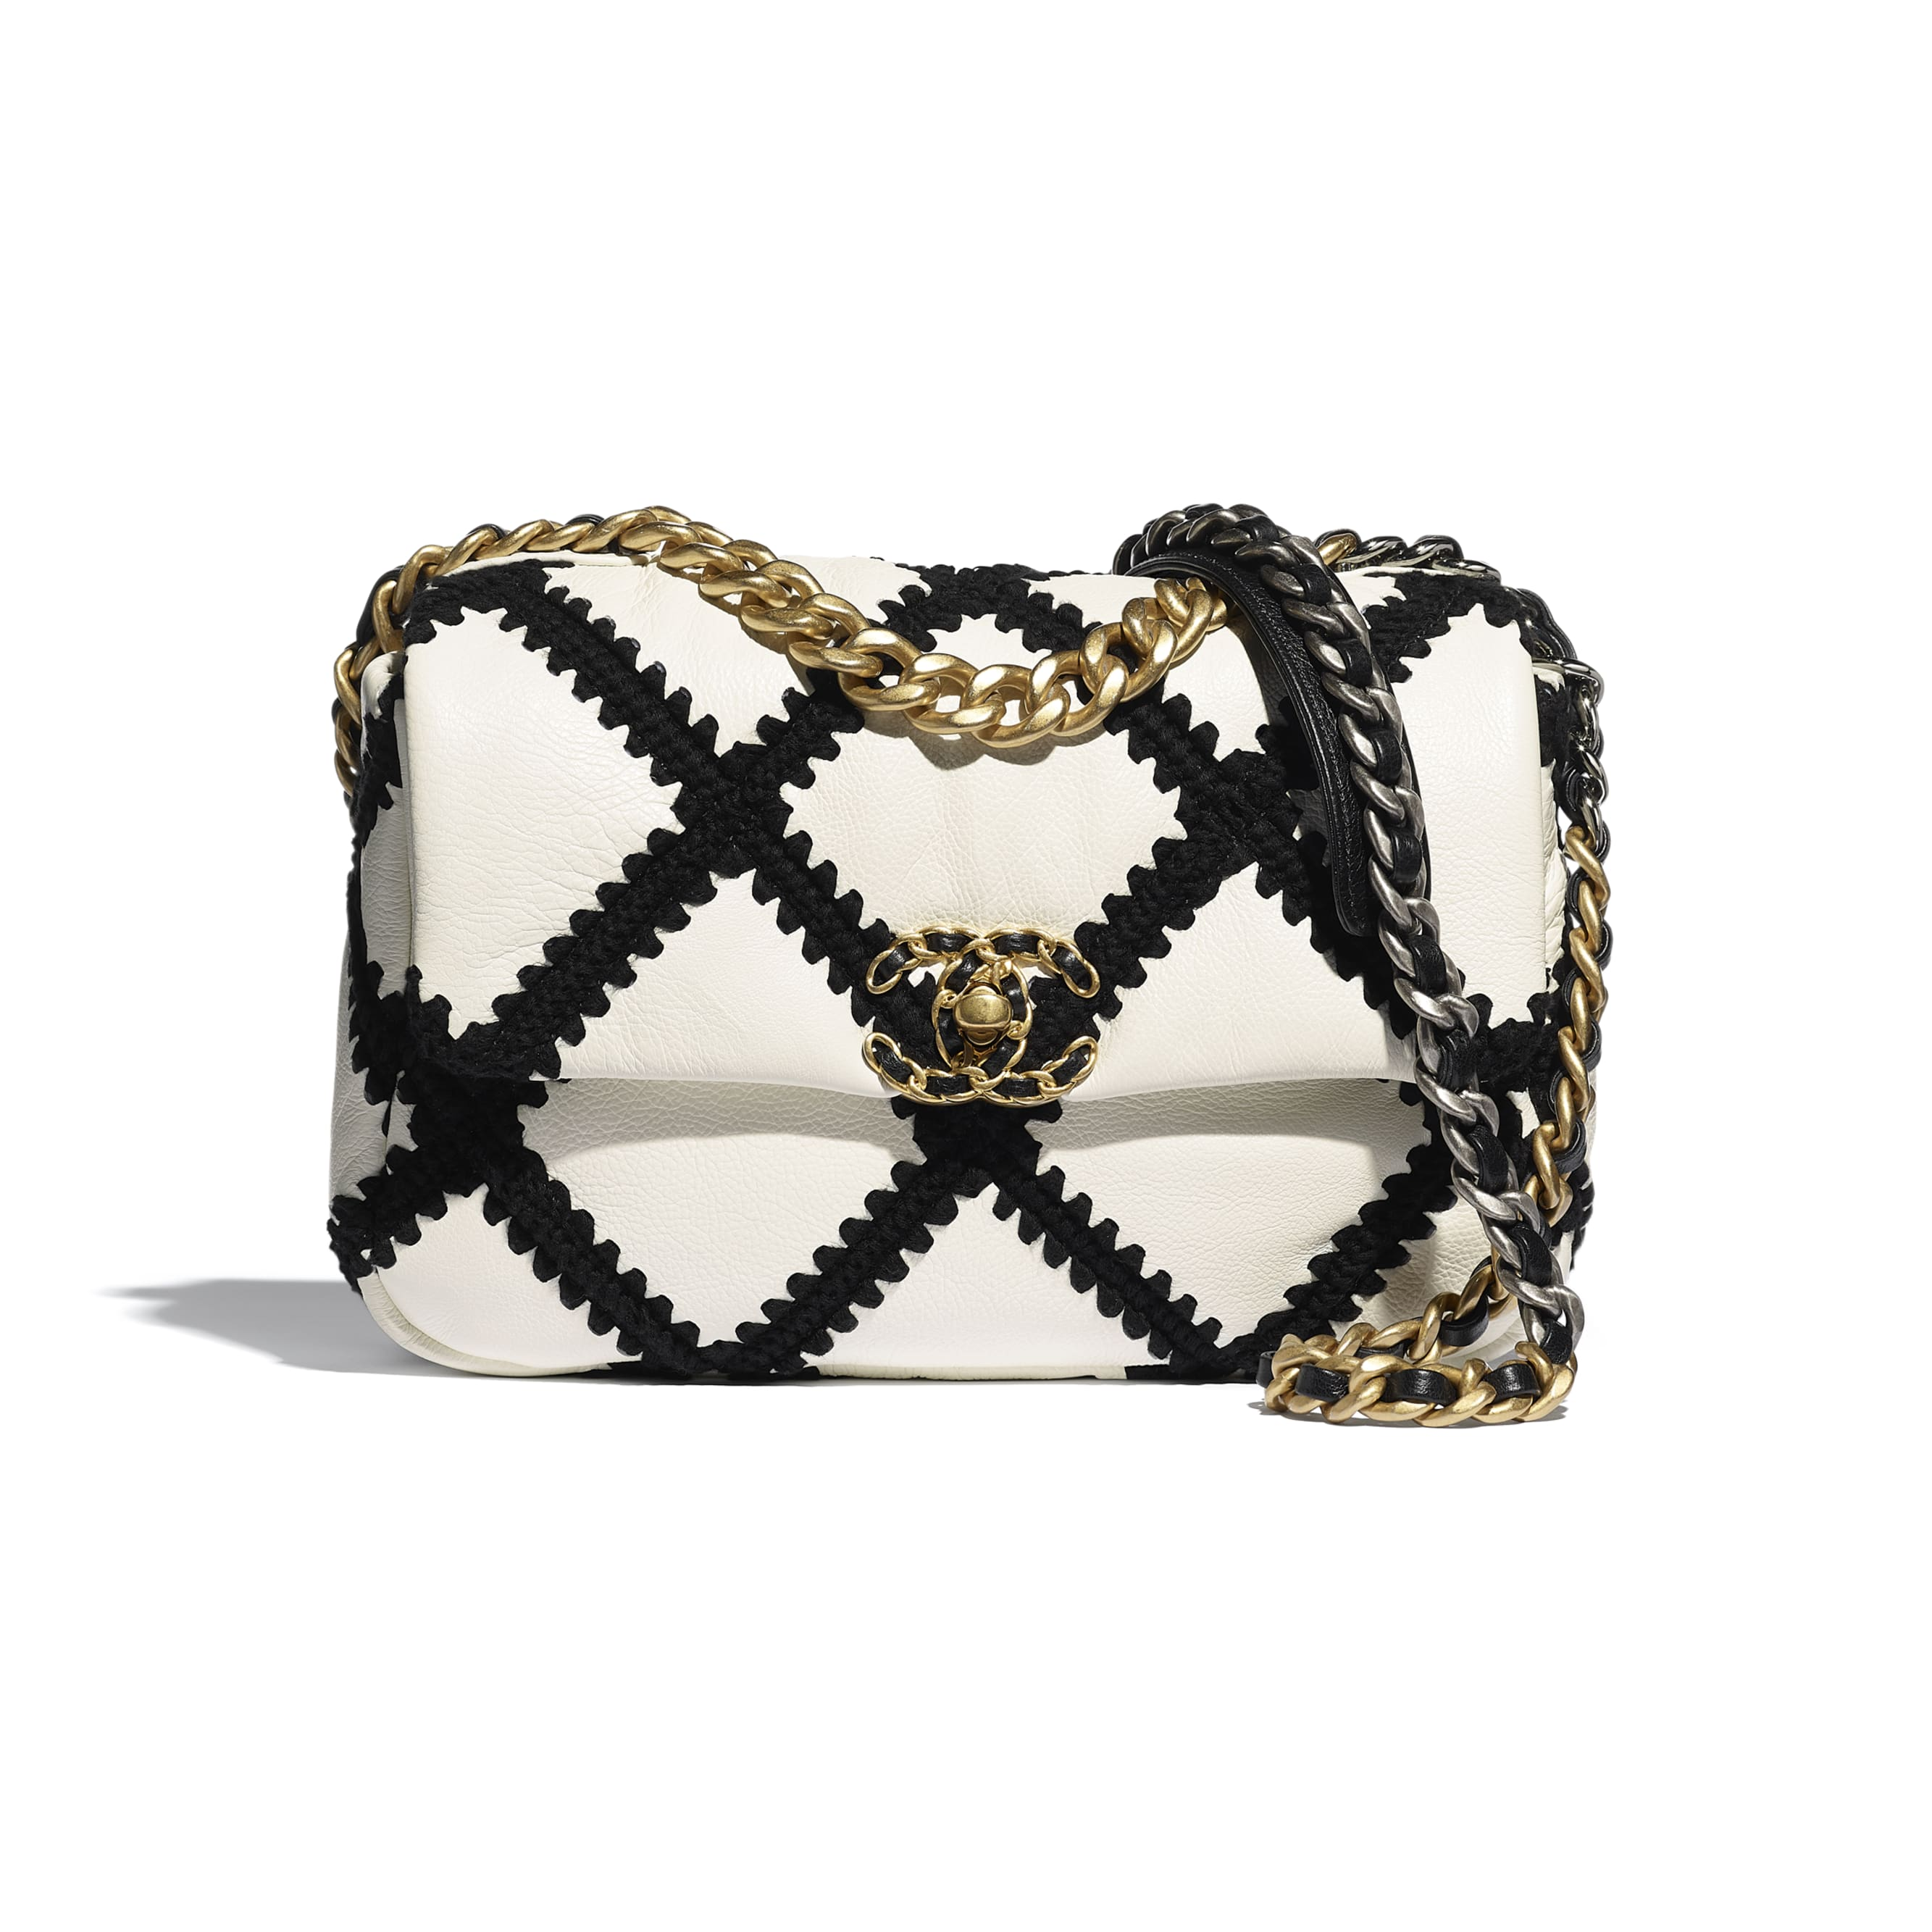 CHANEL 19 Handbag - White & Black - Calfskin, Crochet, Gold-Tone, Silver-Tone & Ruthenium-Finish Metal - CHANEL - Default view - see standard sized version